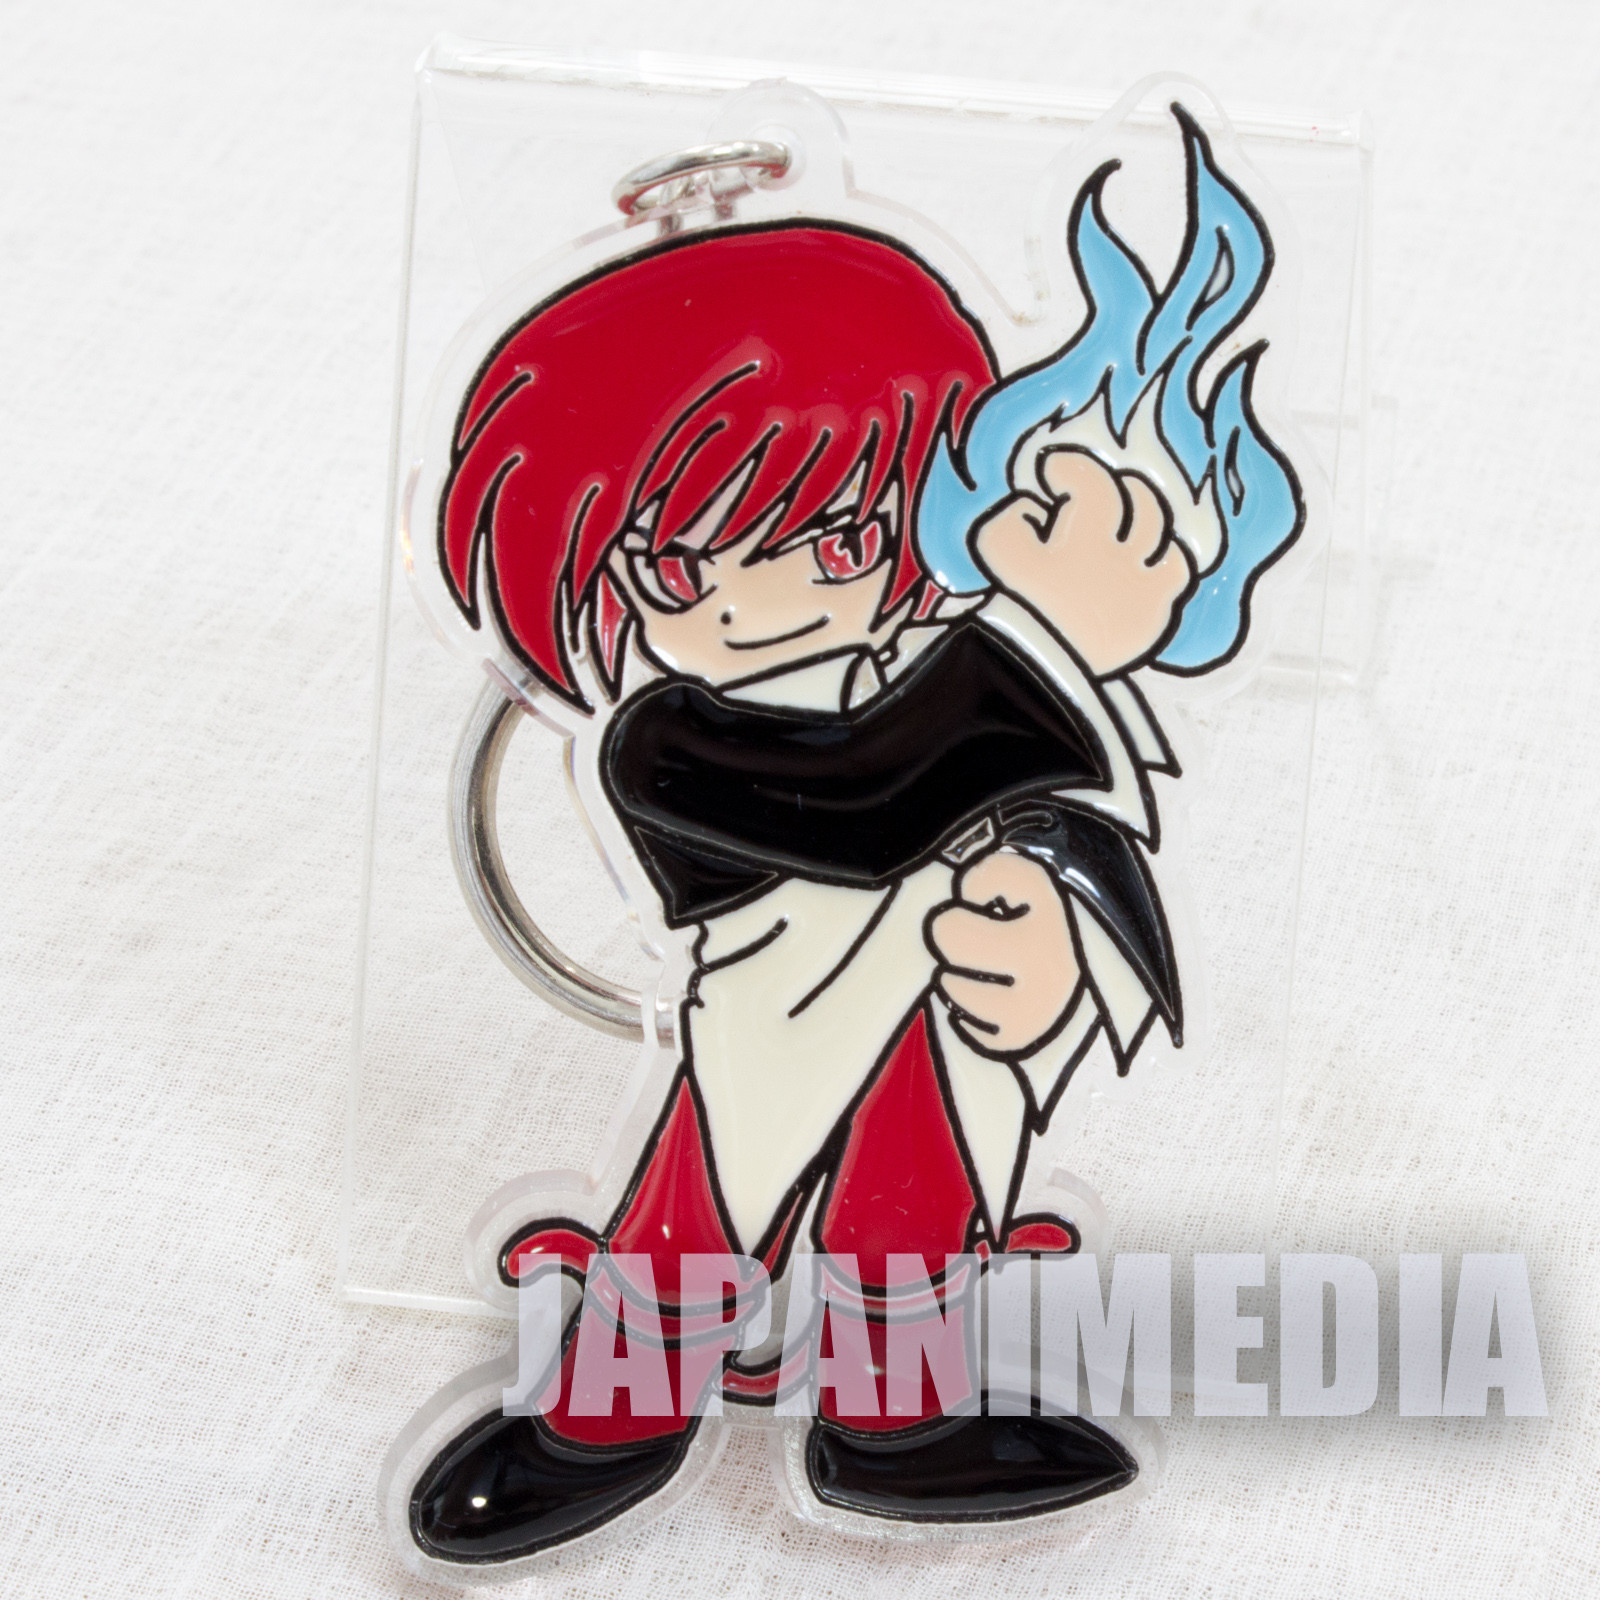 Retro KOF King of Fighters Iori Yagami Acrylic Mascot Keychain SNK 1996 JAPAN